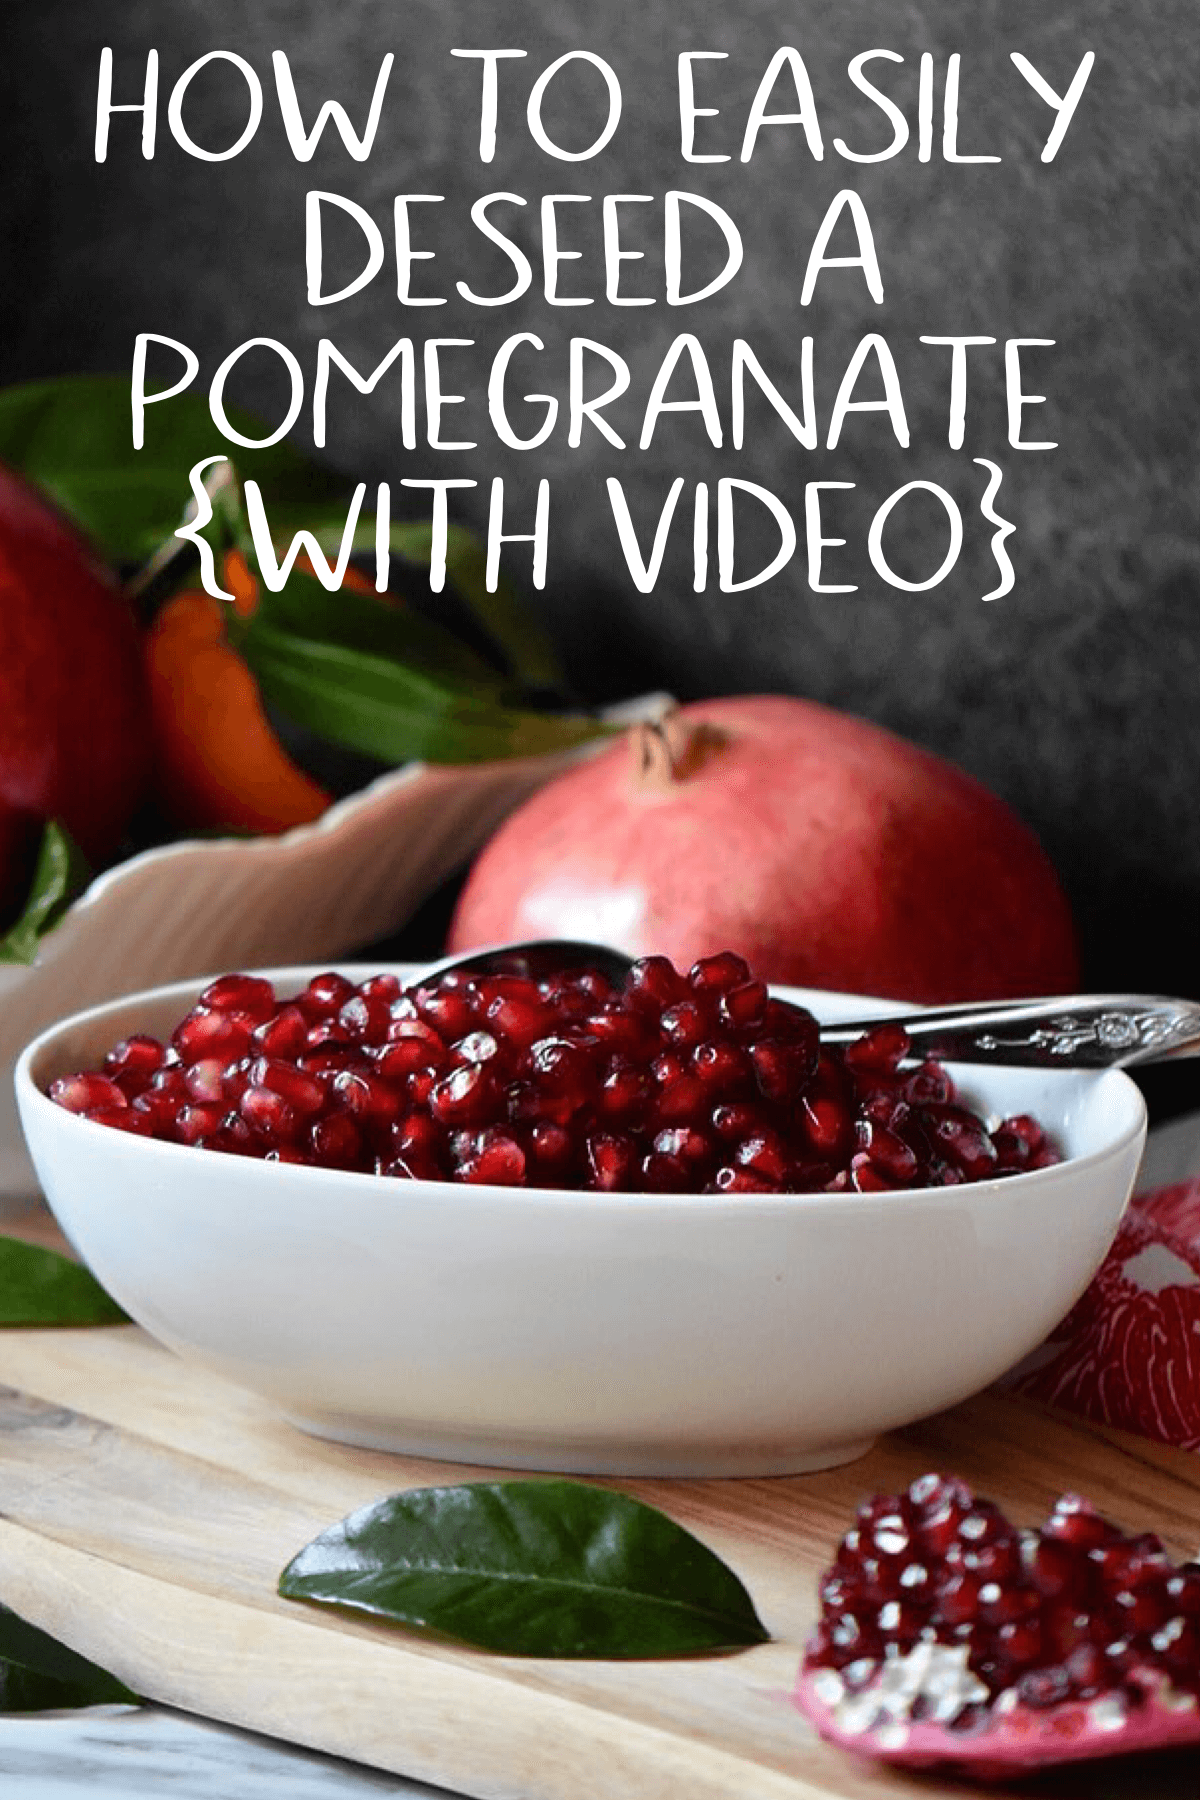 How to Easily Remove Pomegranate Seeds || how to deseed a pomegranate || video on how to deseed a pomegranate #howto #fallfood #pomegranate  #pomegranate #how to deseed video